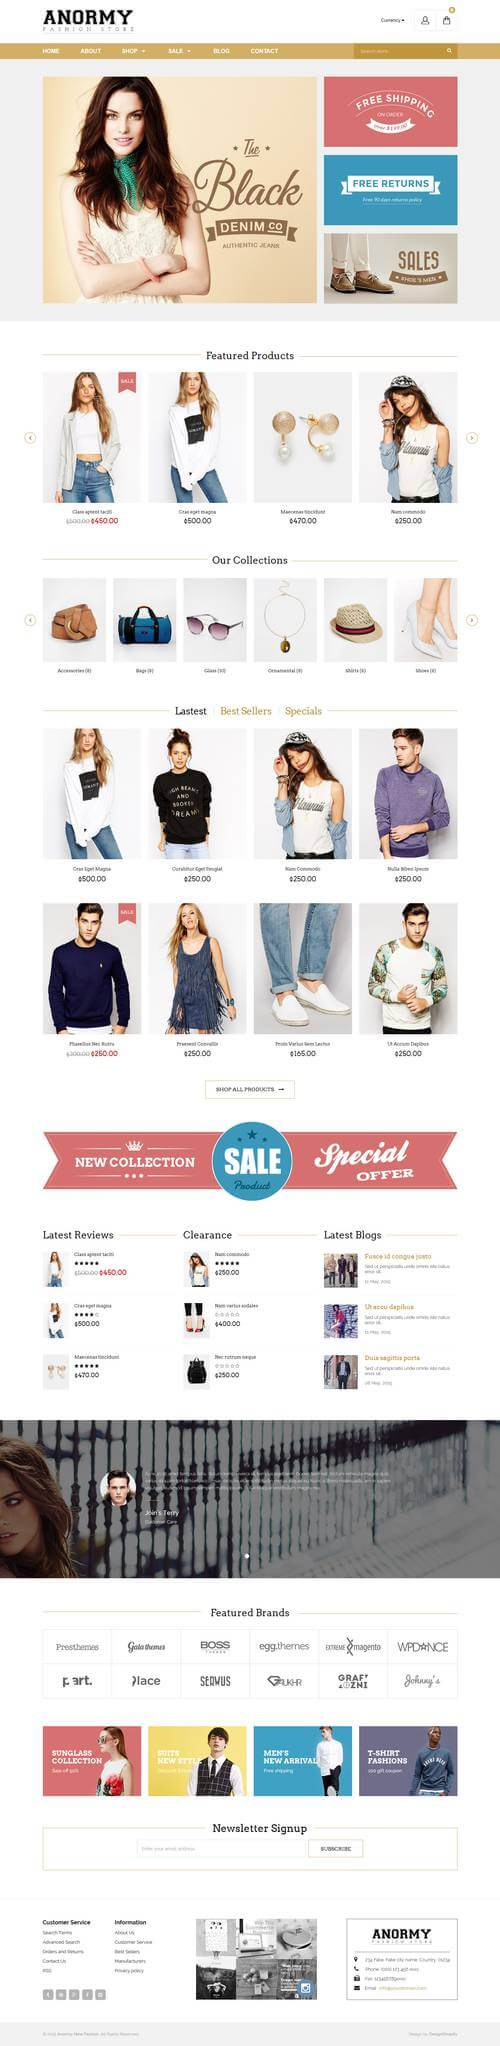 Best SHOPIFY Premium Themes Collection for large inventory Stores 2017 - Anormy - Flexible Shopify Template